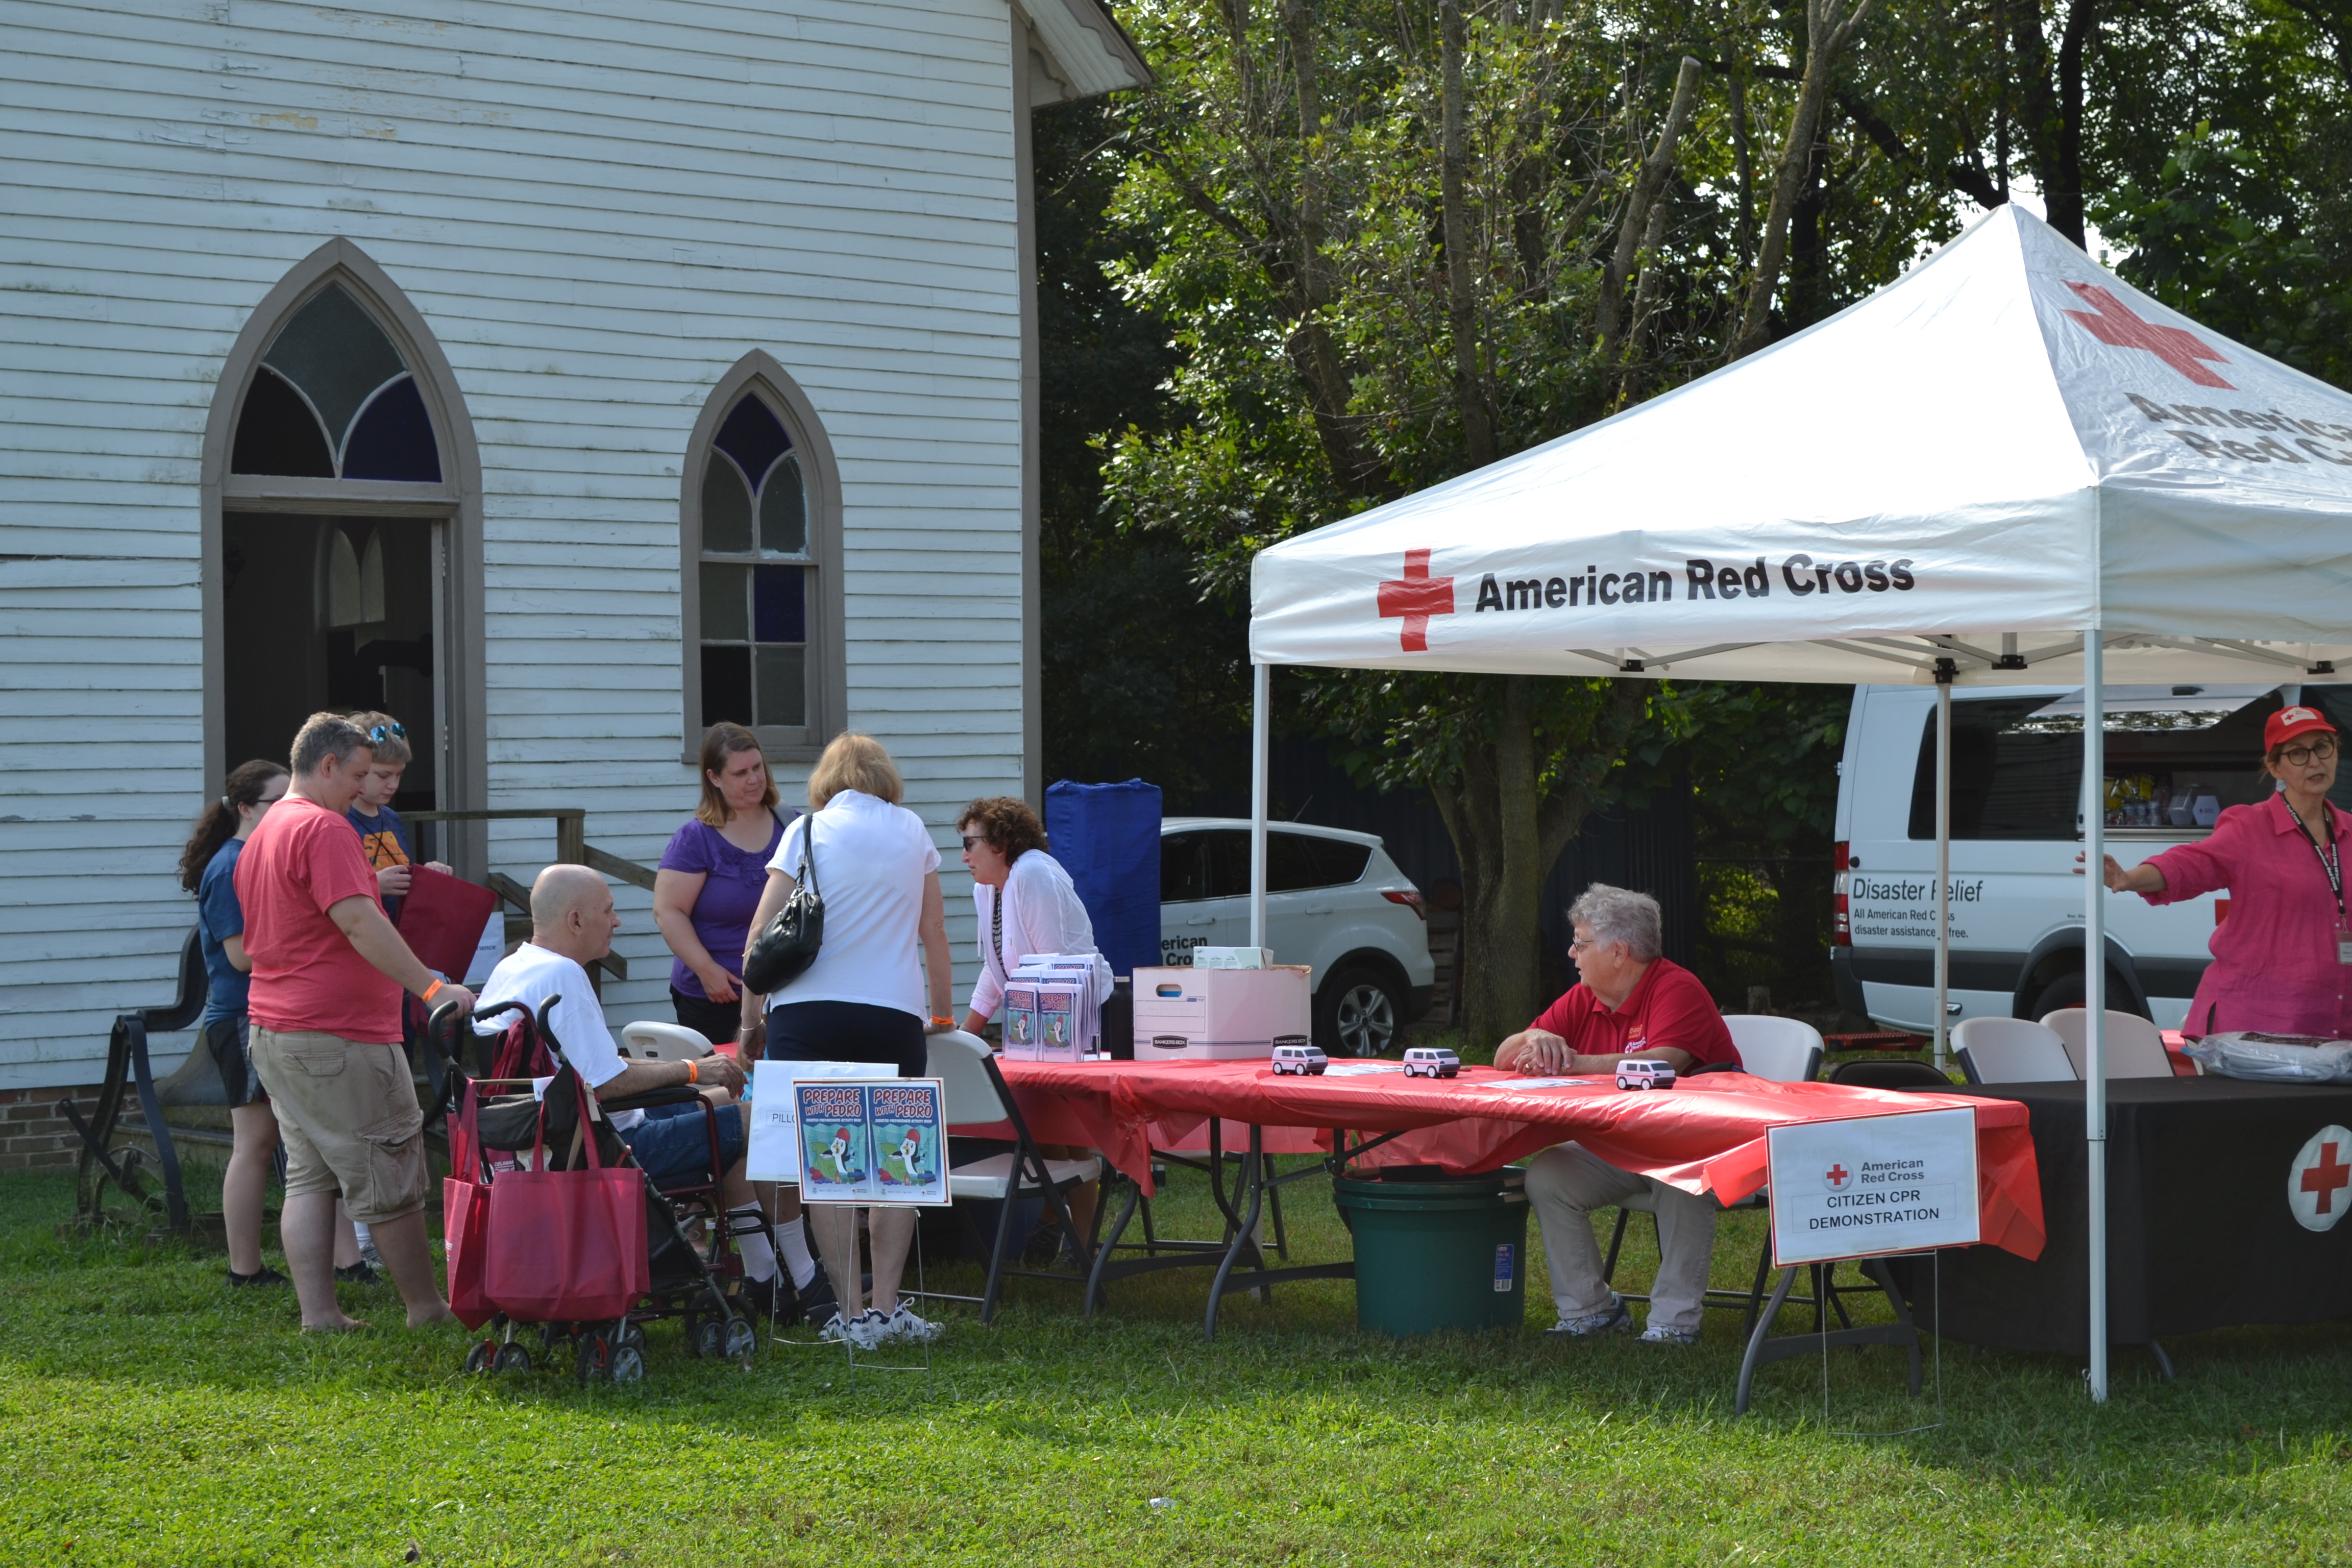 Family Preparedness Day American Red Cross Vendor Table and Tent